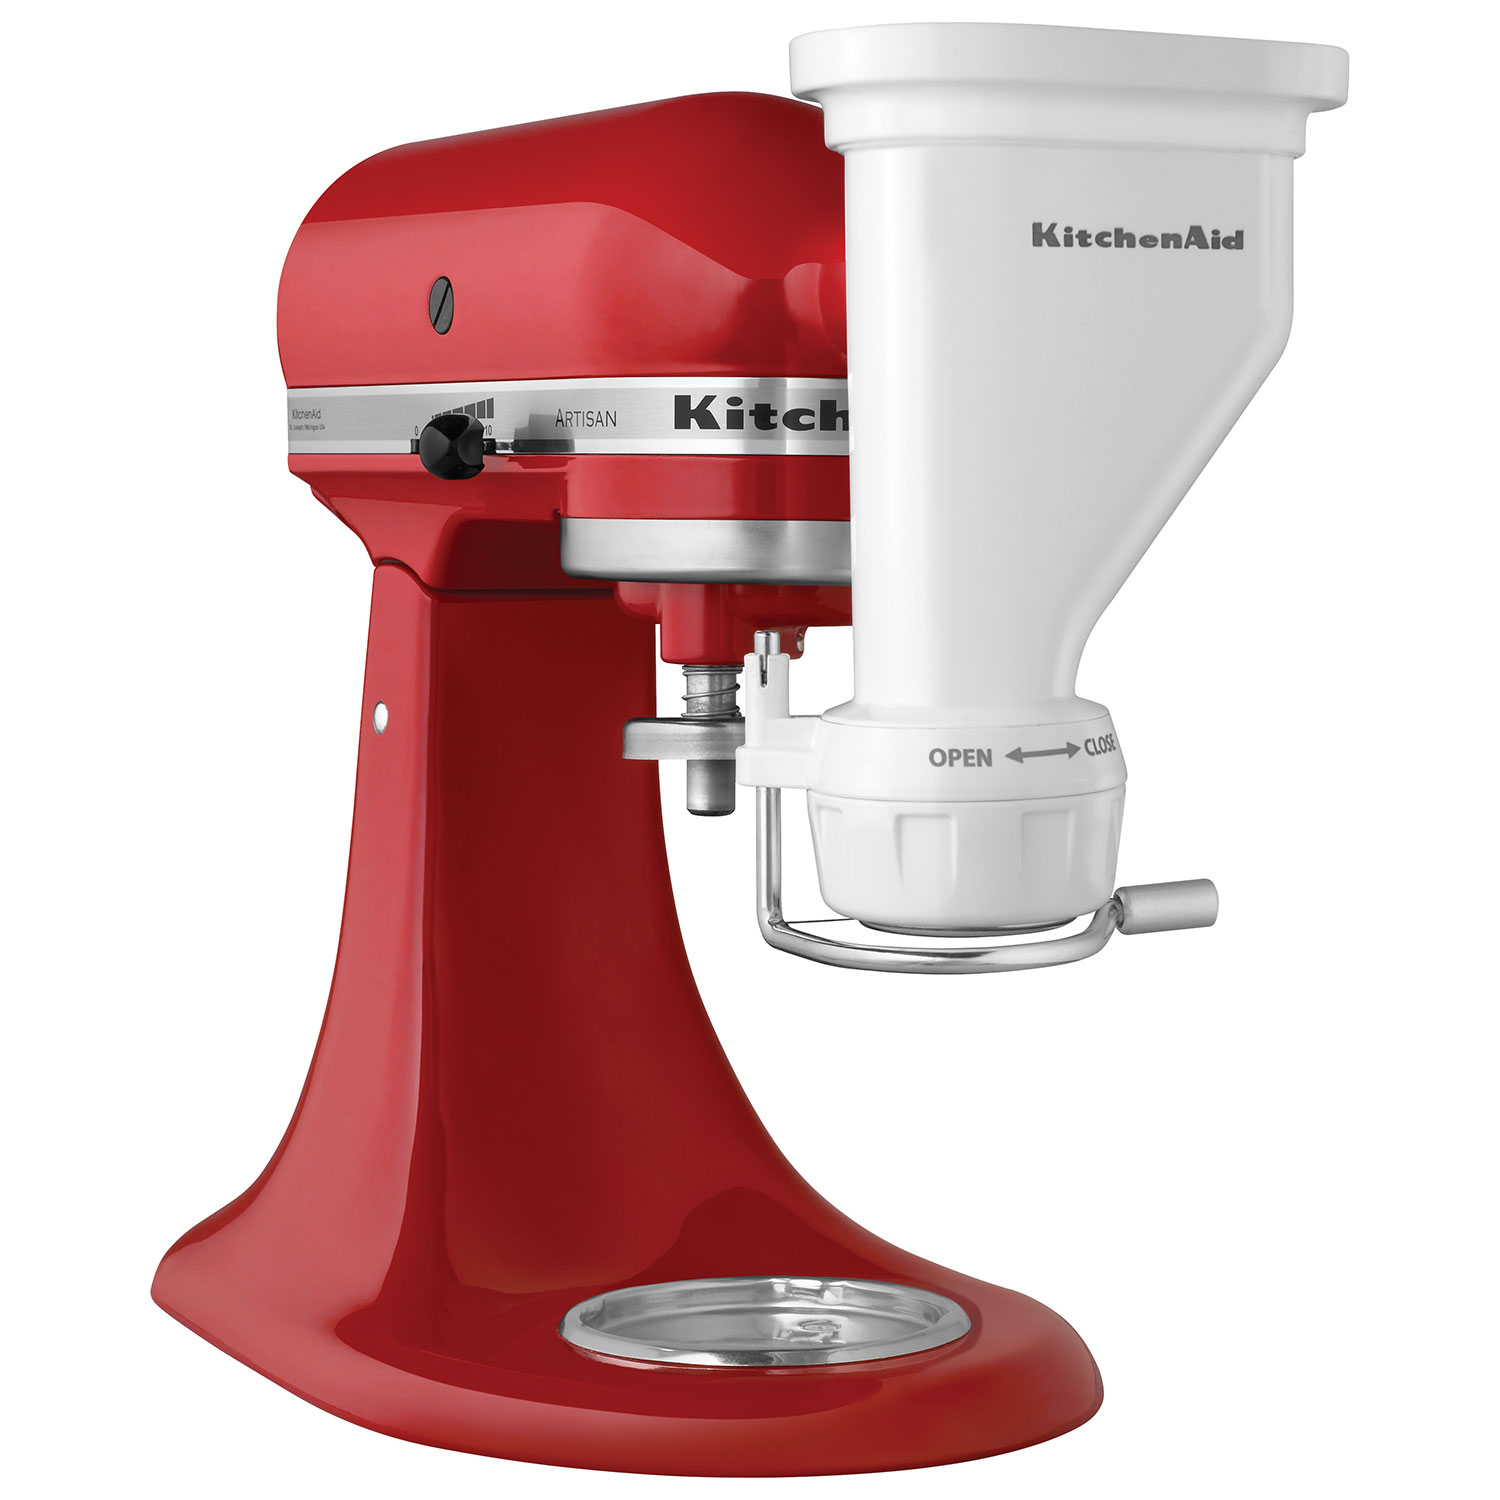 Kitchenaid Artisan Mixer Canada